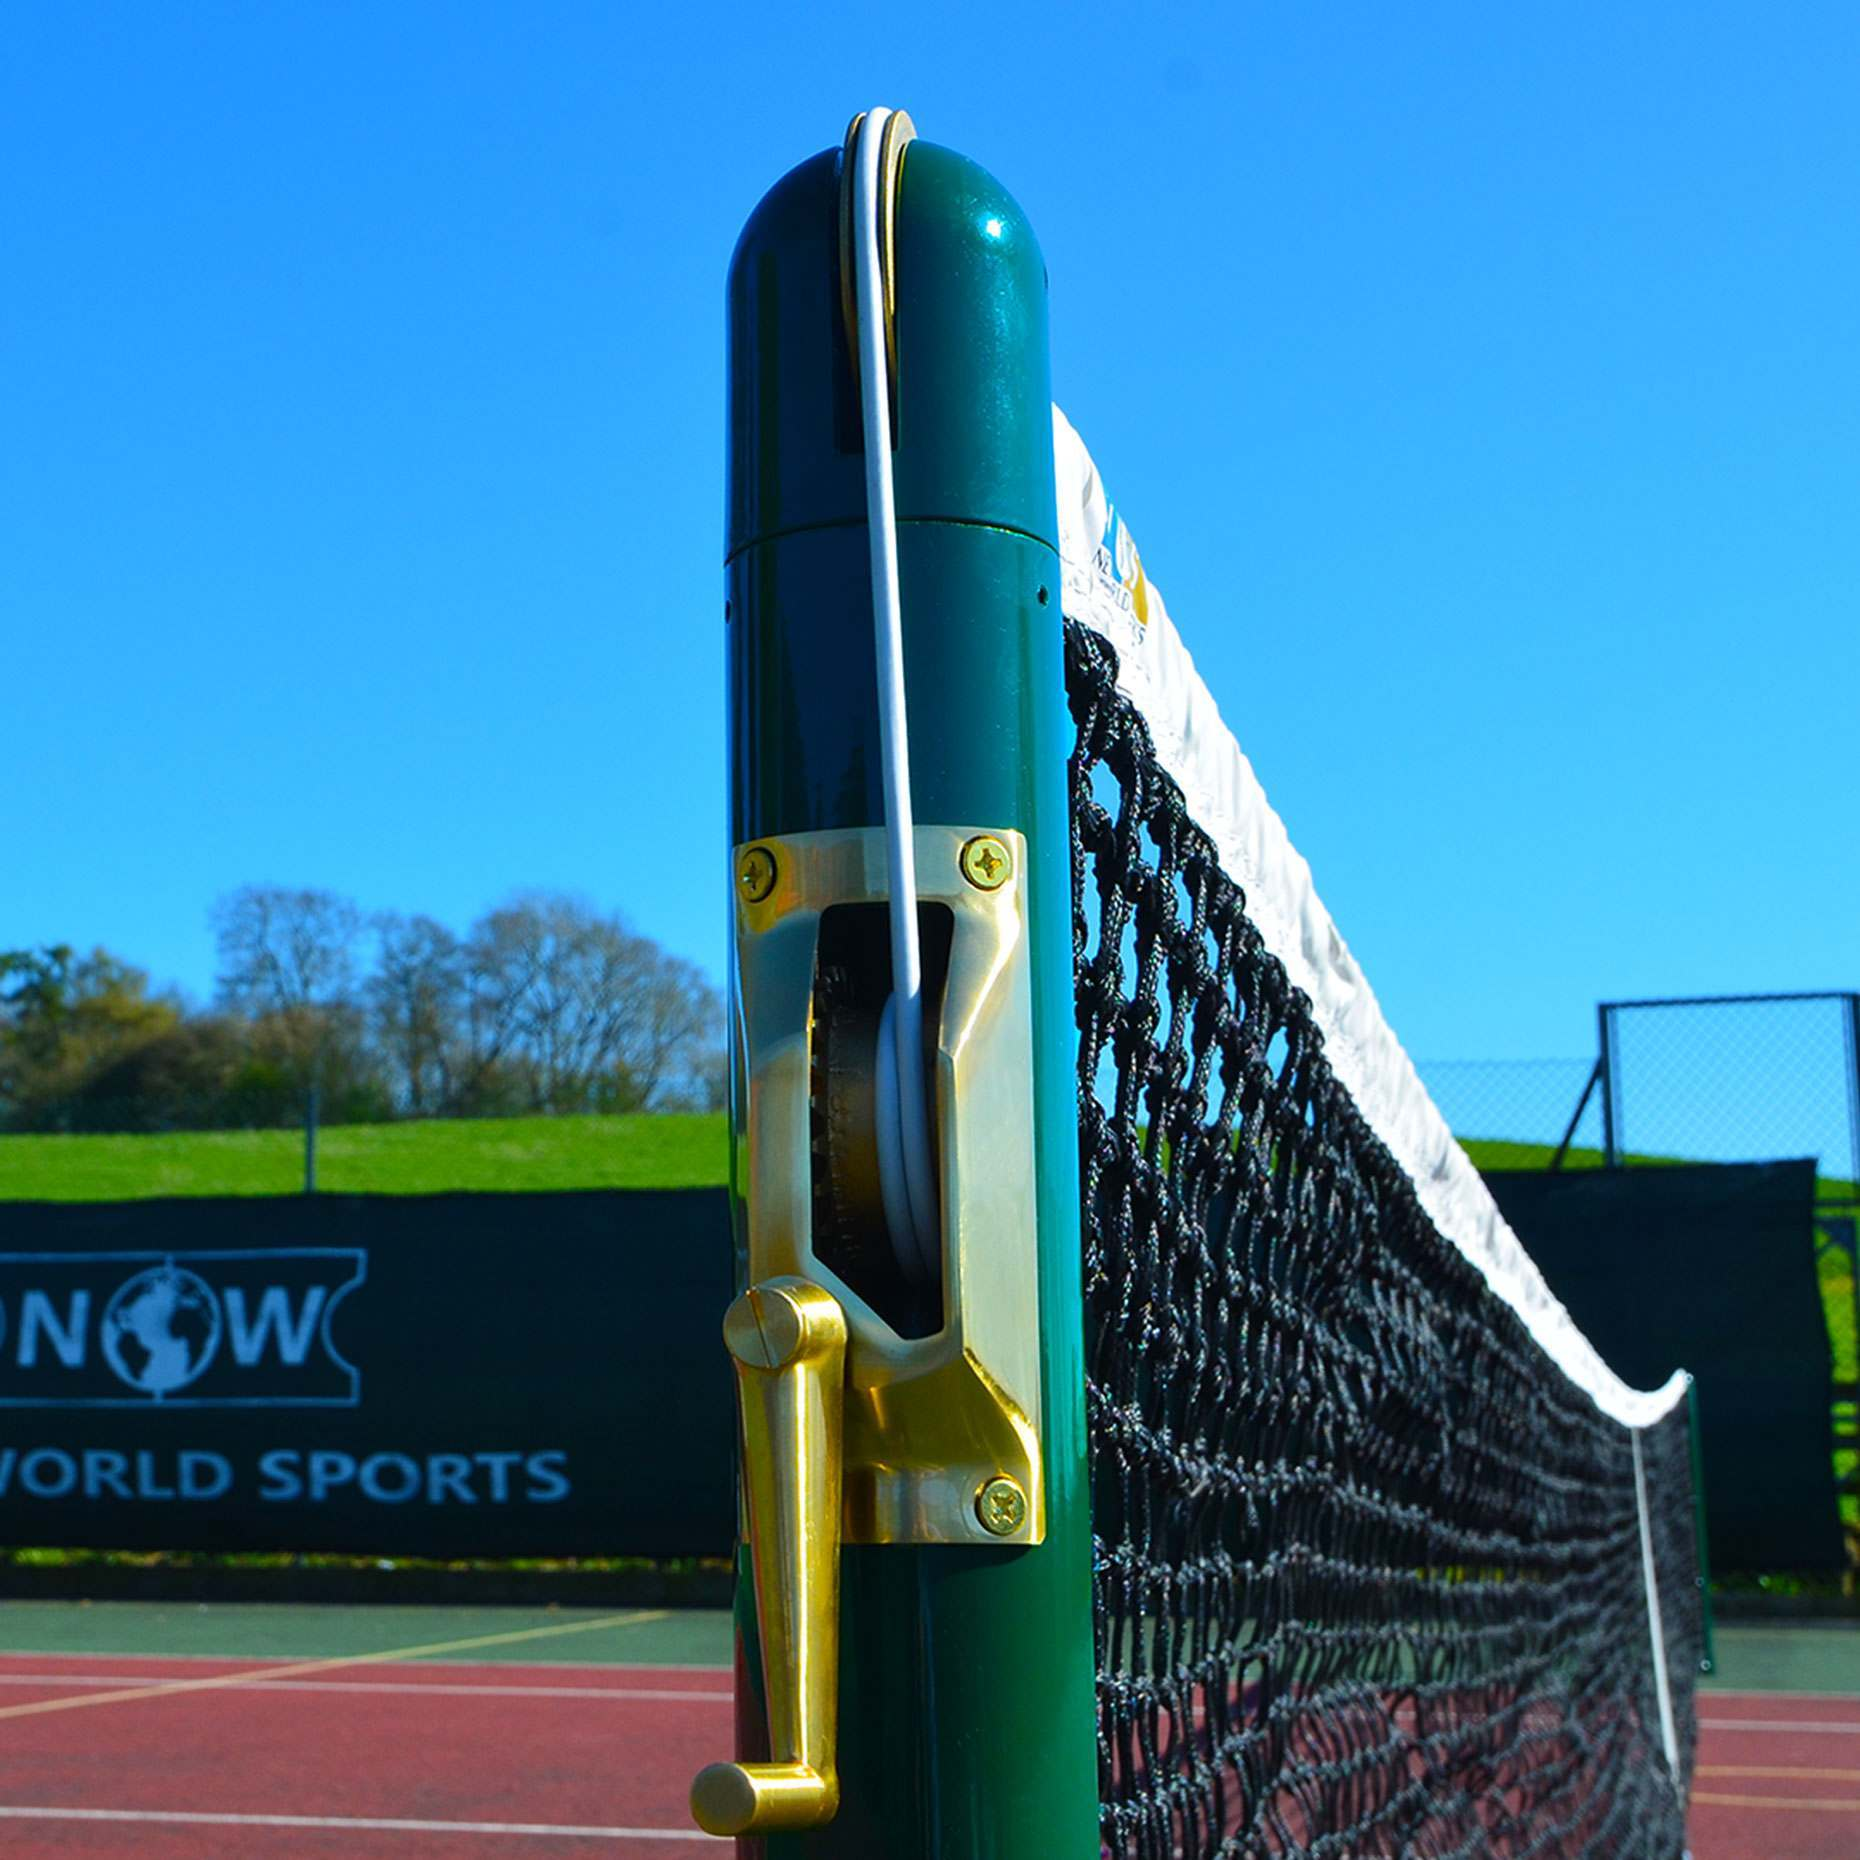 FORTIS Round Tennis Posts